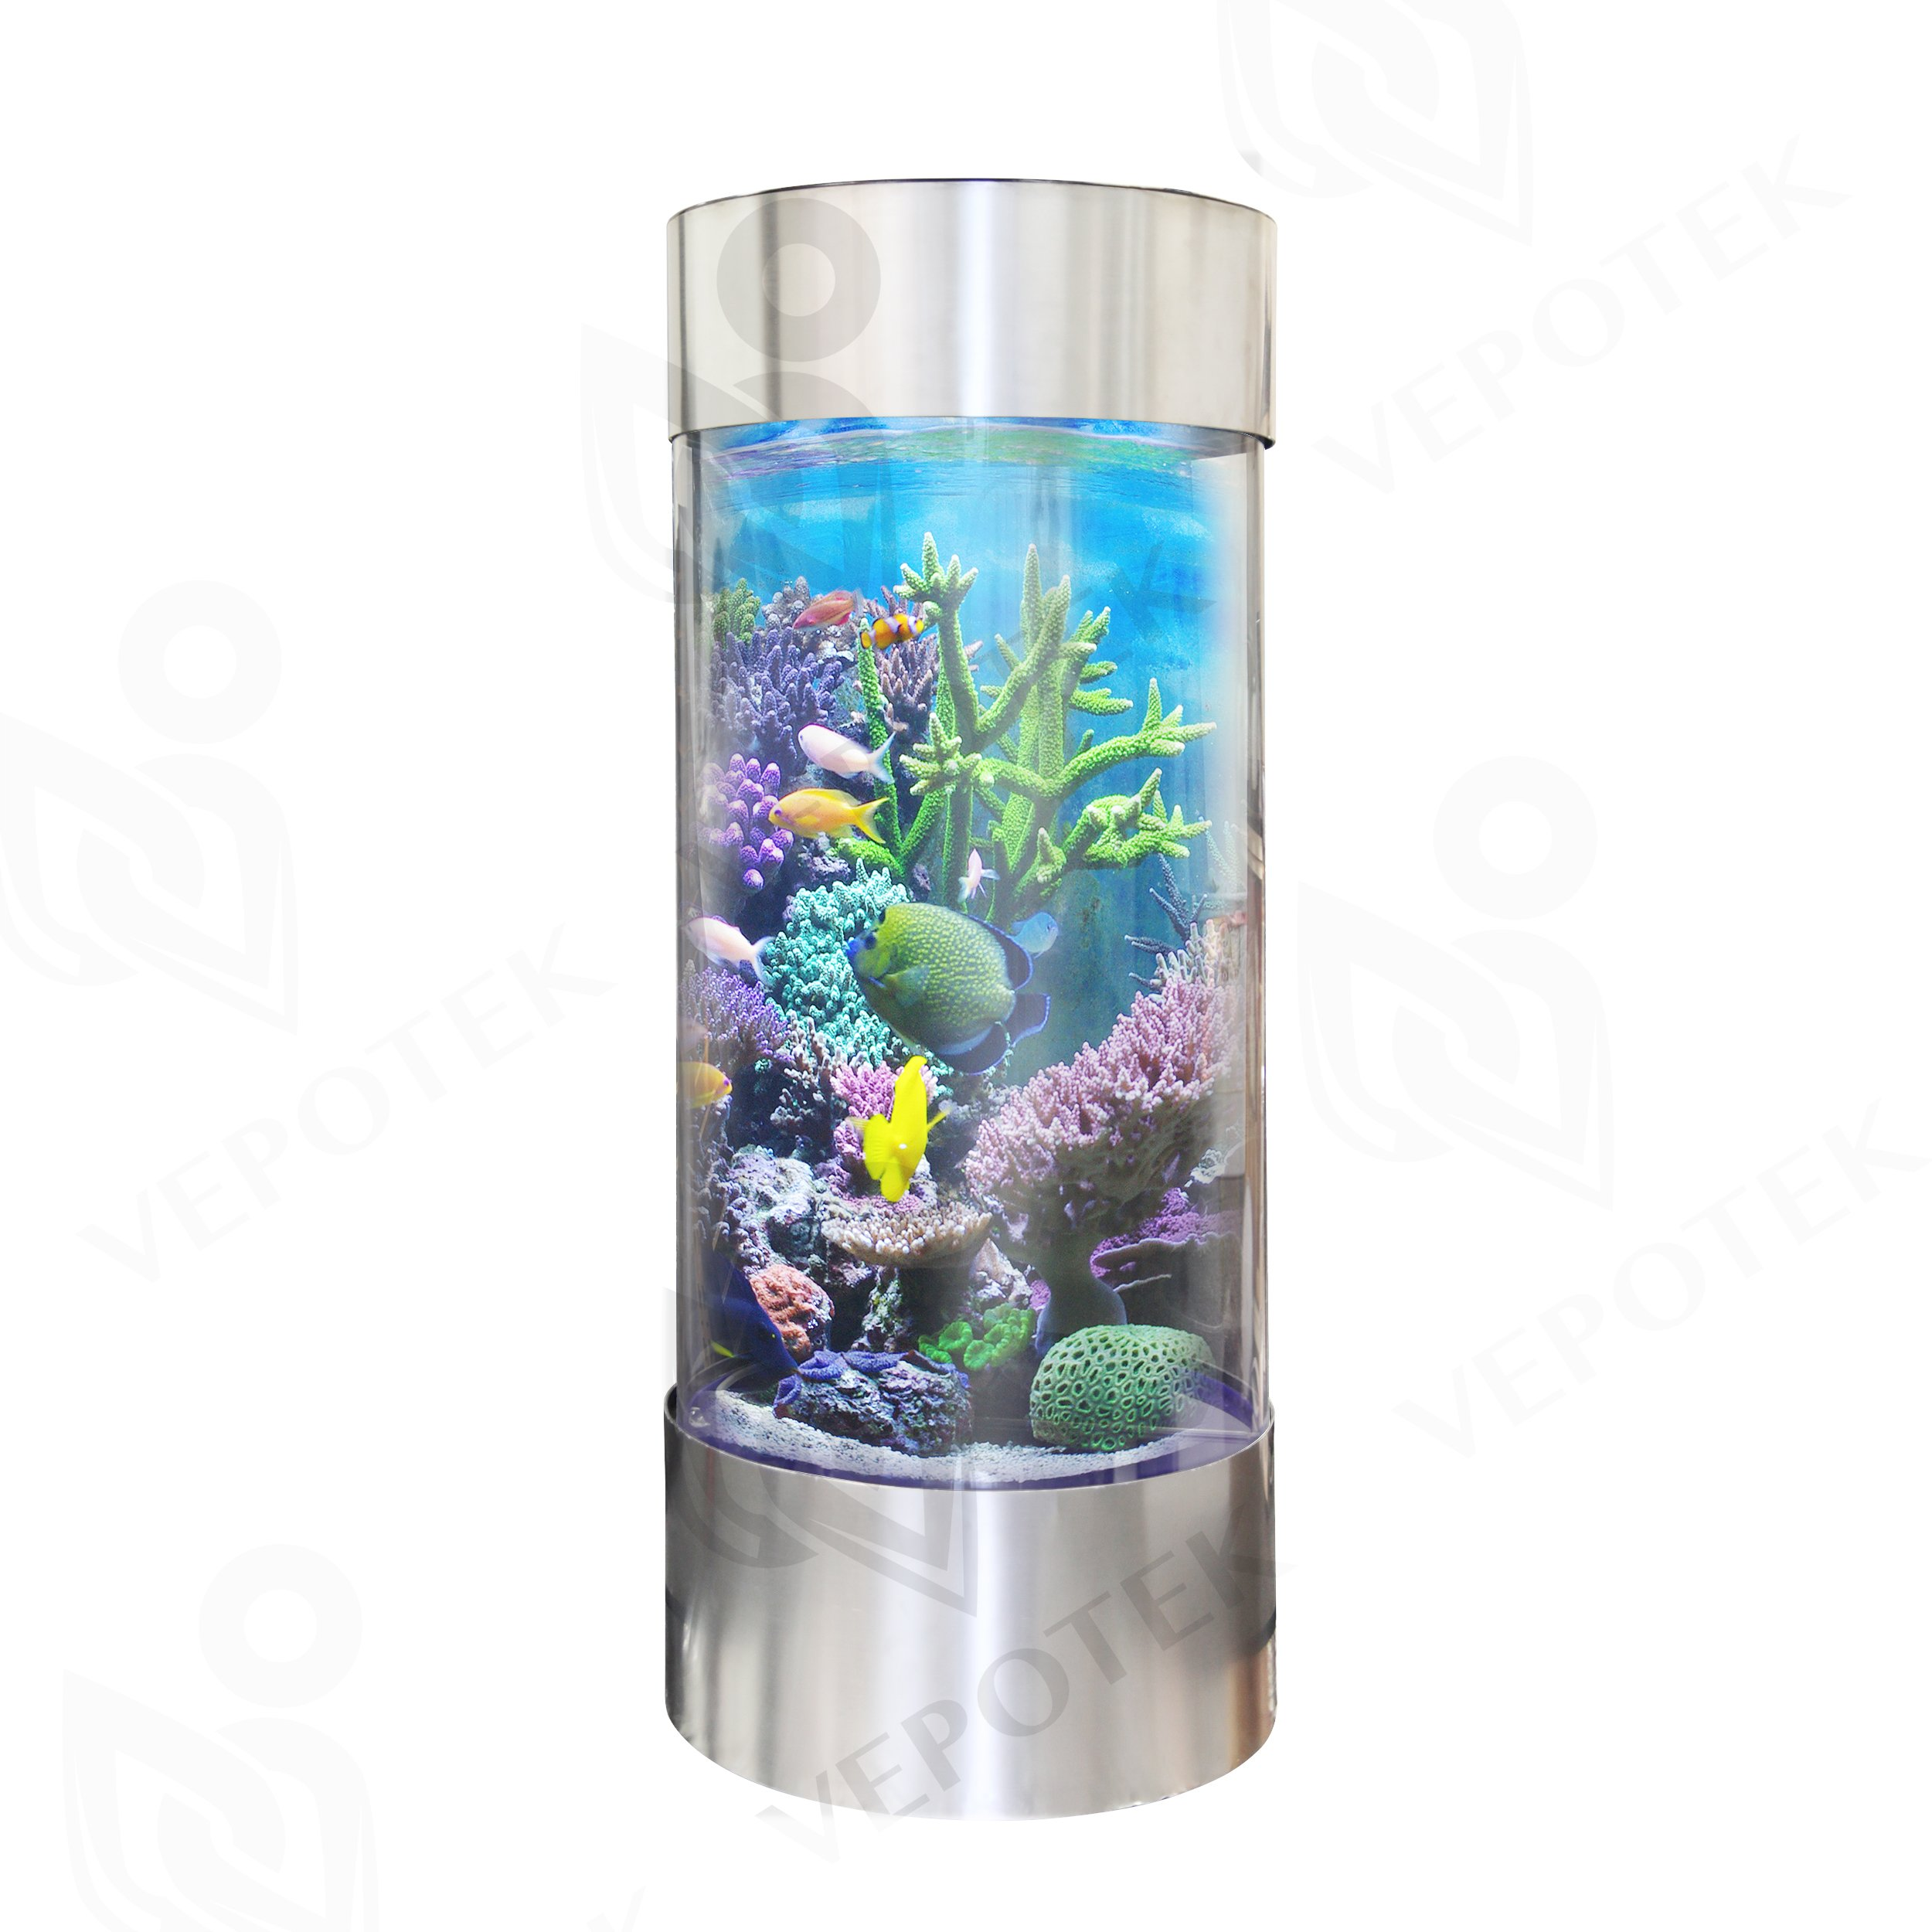 Full Acrylic 360 Cylinder Aquarium Tank w/ Stainless Steel Trim 50 Gallons & 70 Gallons